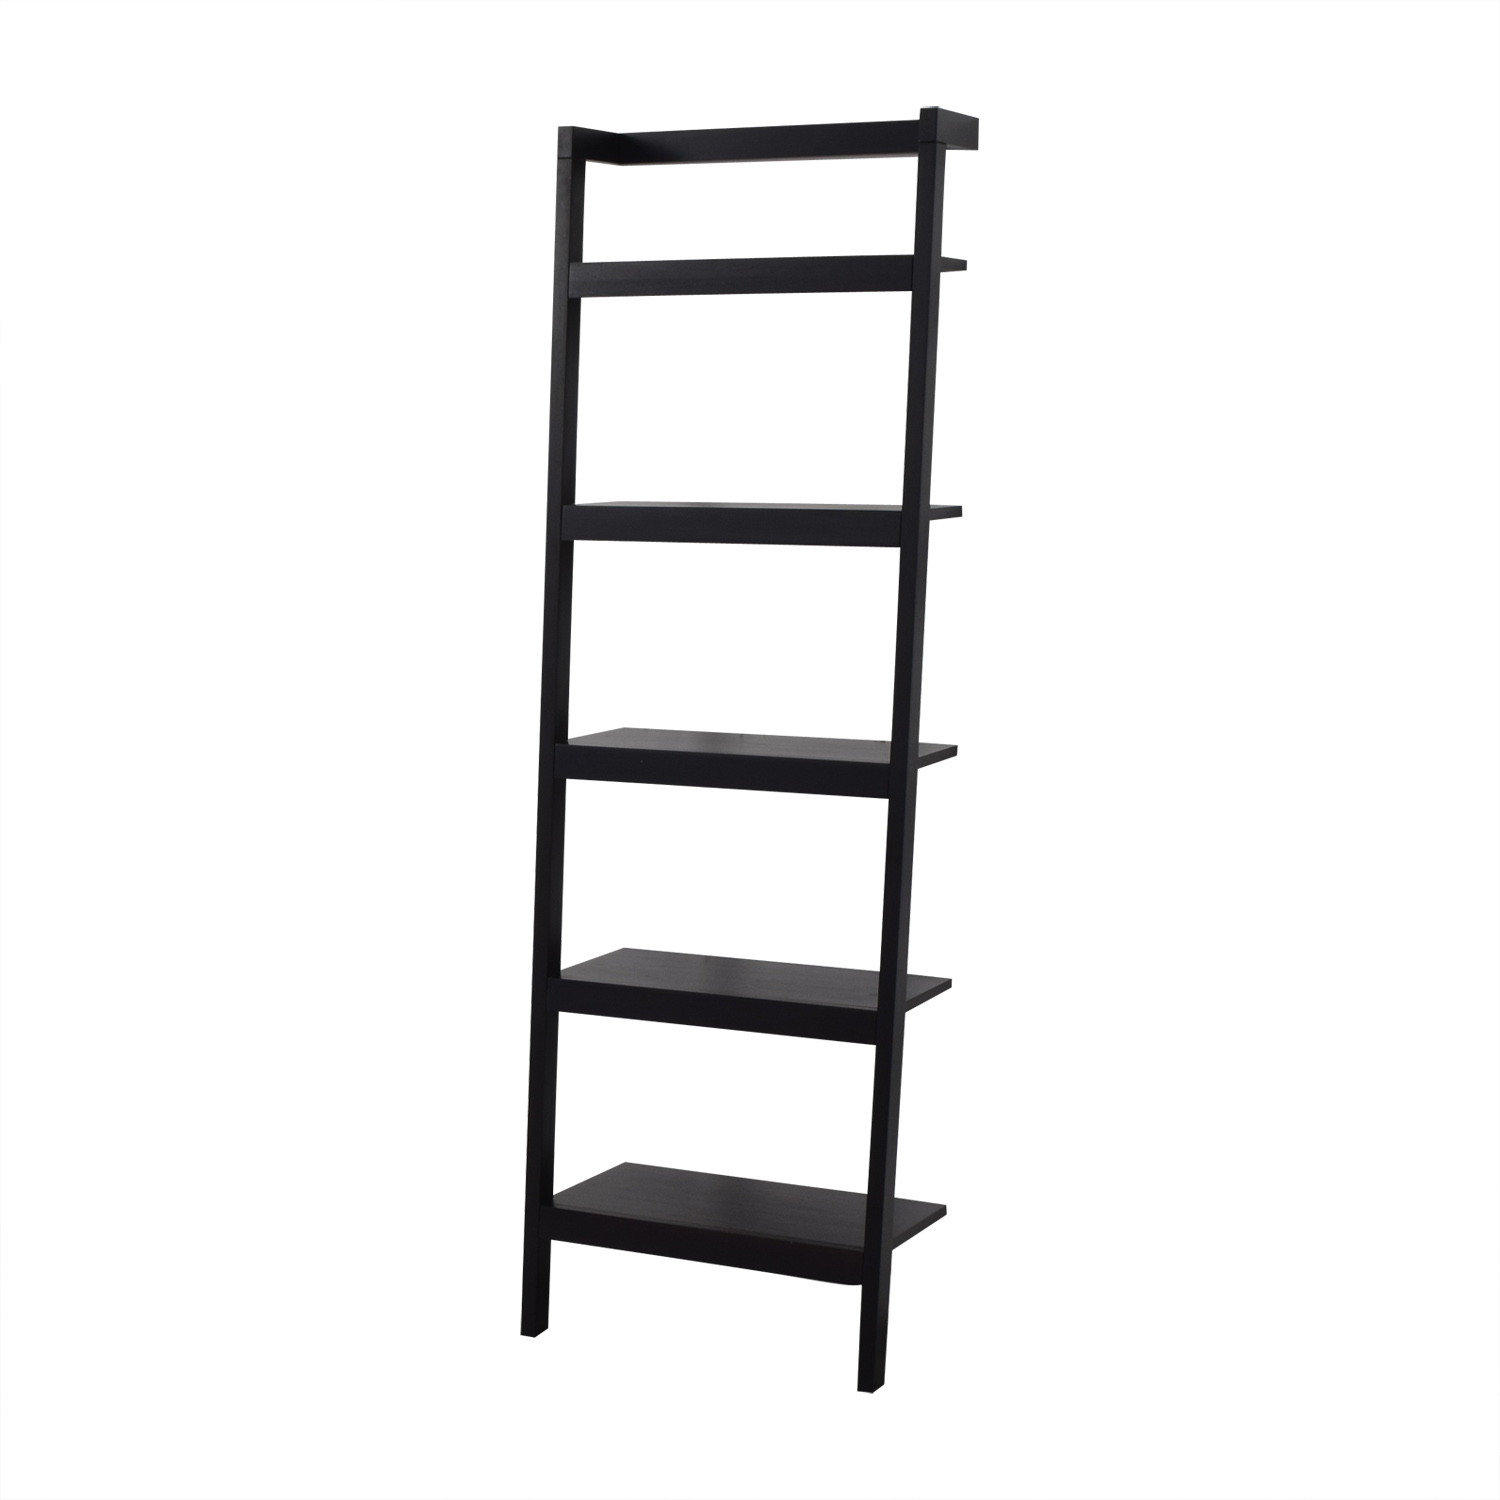 Crate & Barrel Crate & Barrel Sawyer Leaning Bookcase Bookcases & Shelving